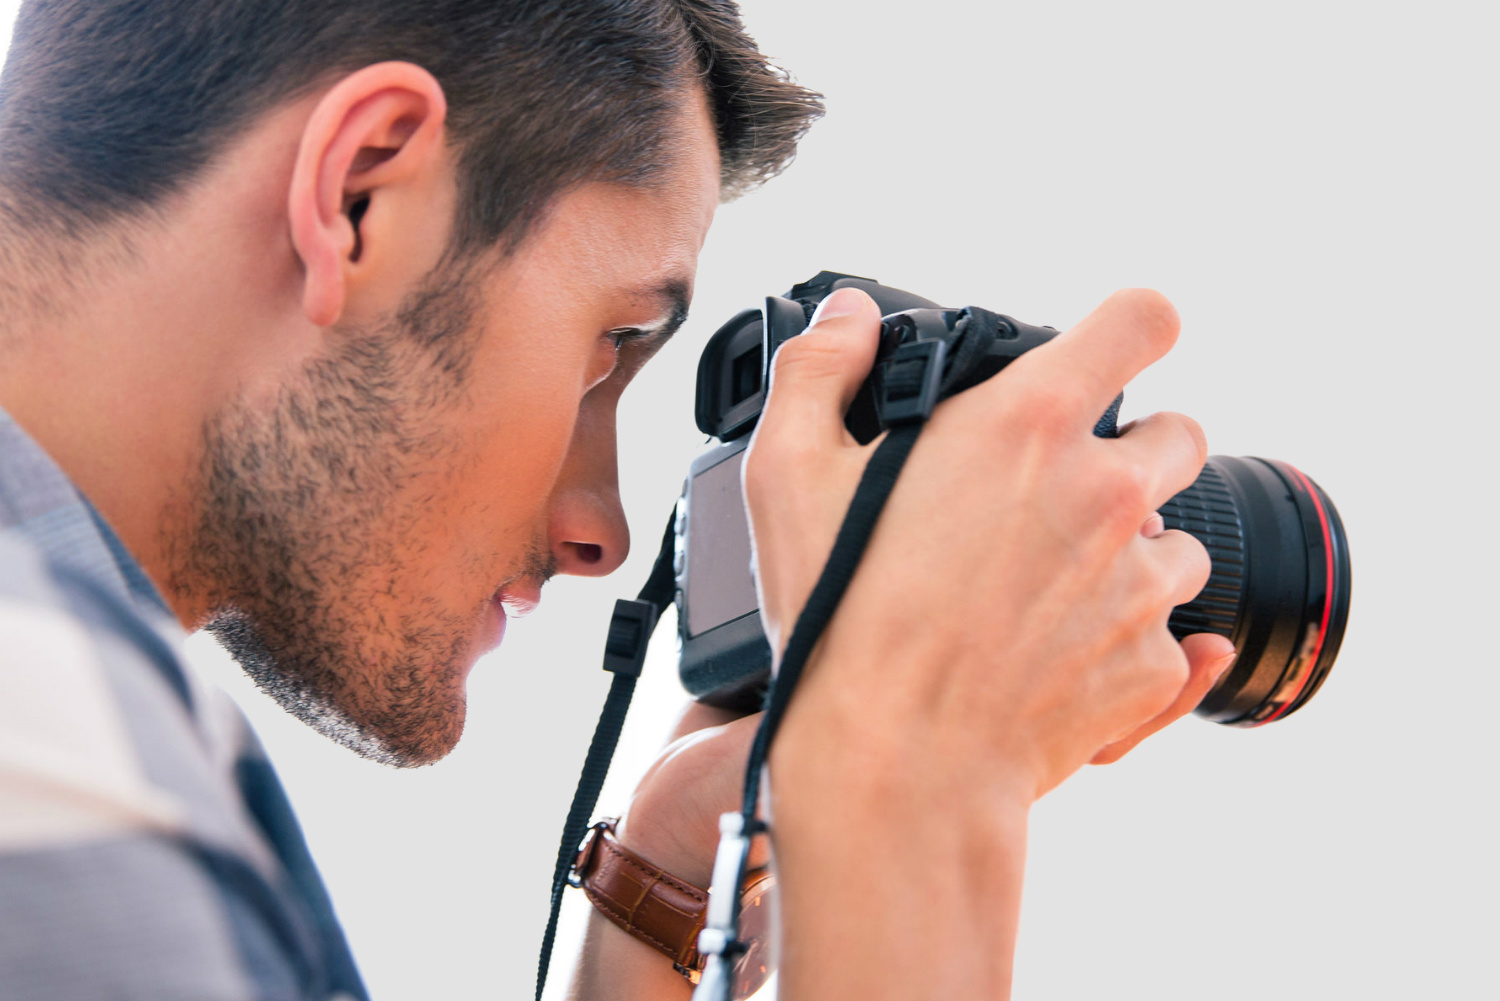 An image of a man using a digital camera to take a photo.